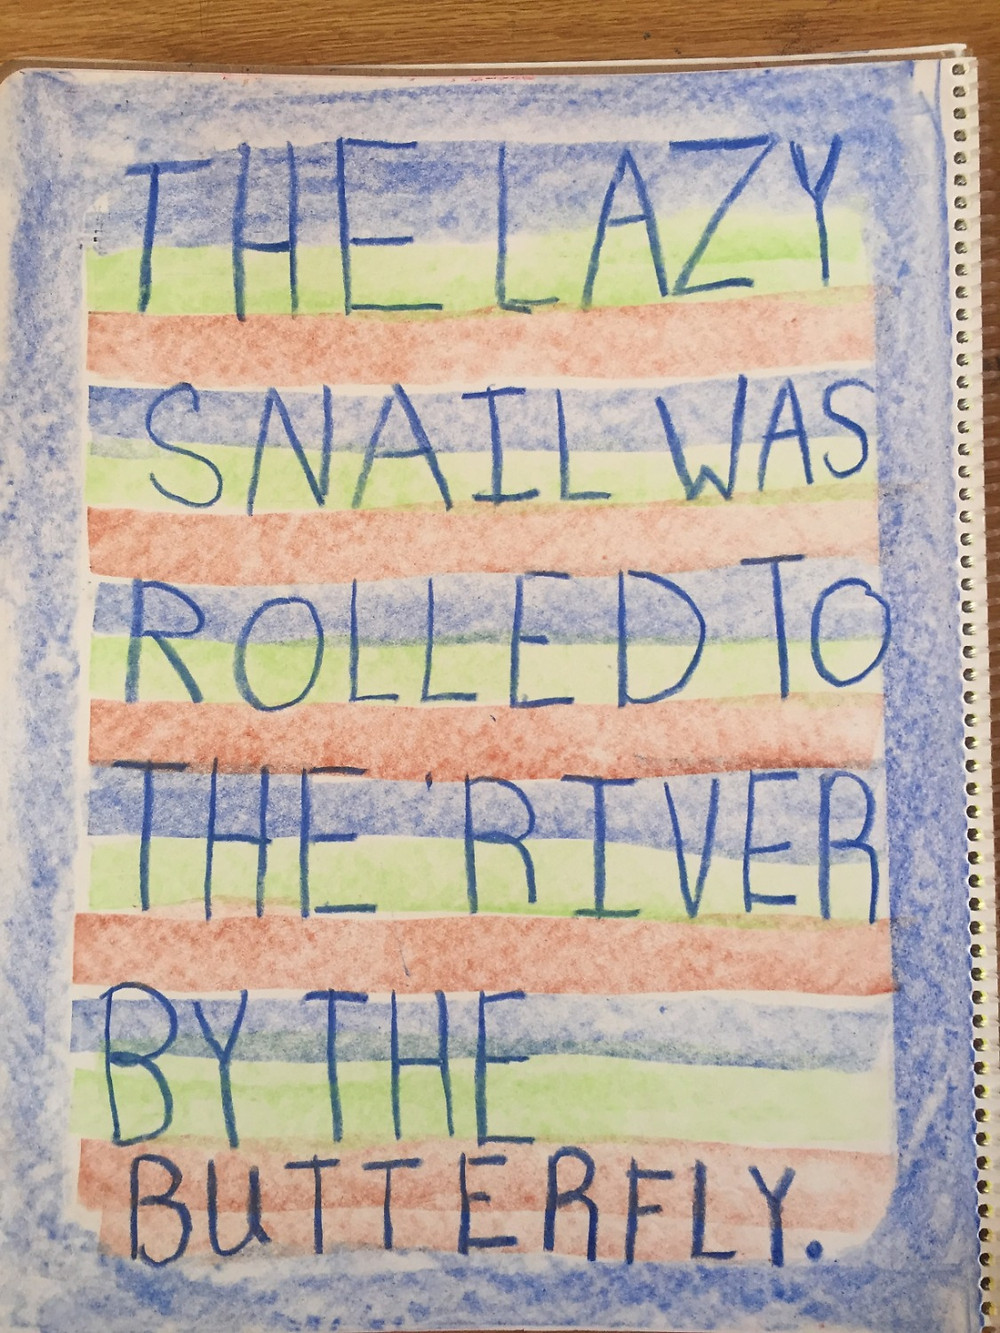 """The lazy snail was rolled to the river by the butterfly"" written by a PCWS first grader."